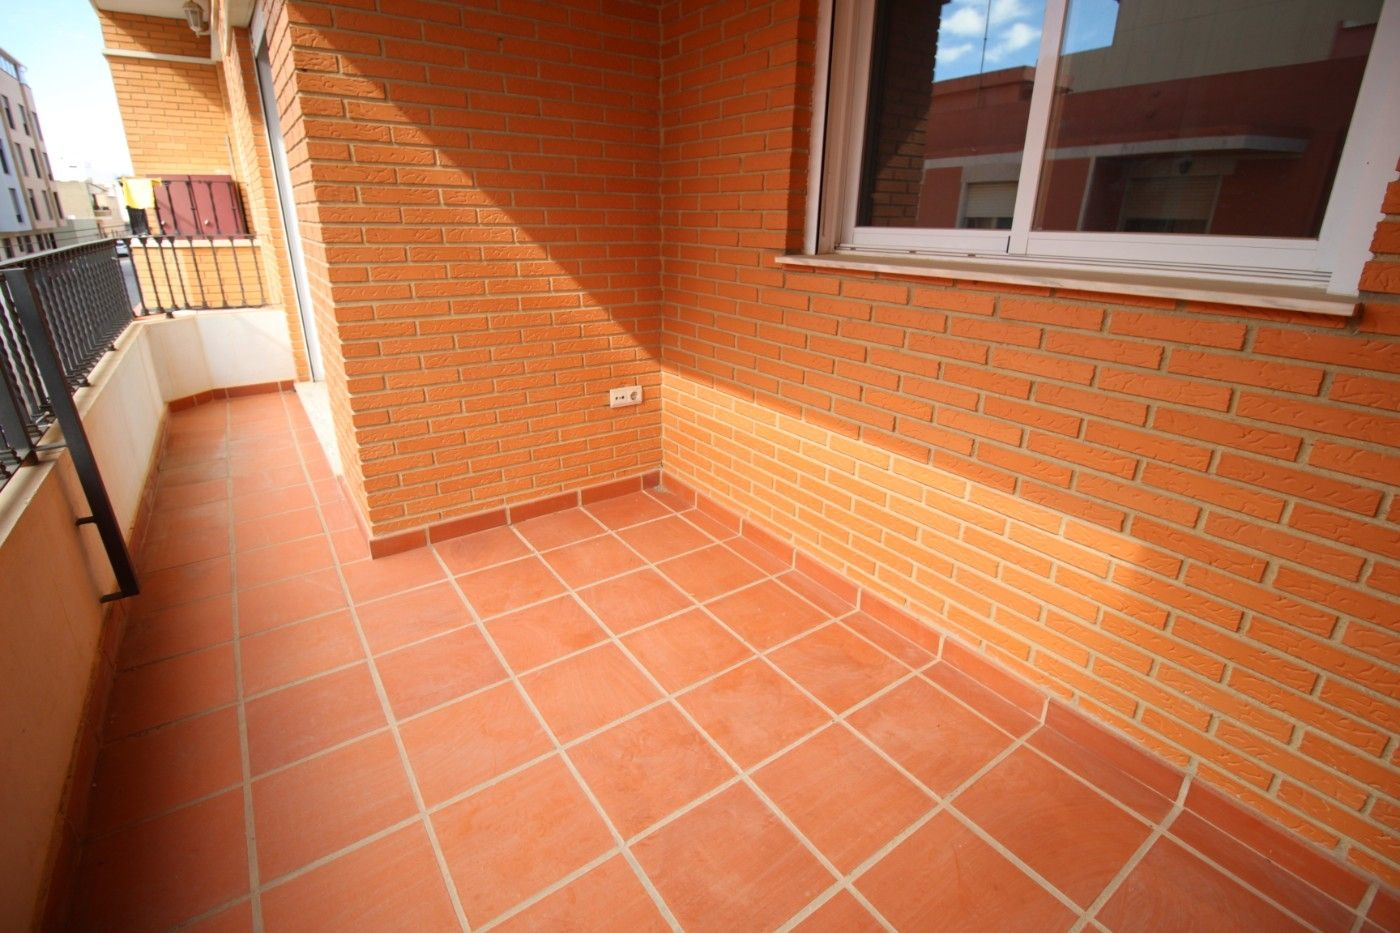 Flat in Calle borriana, 19. Oferta bancaria